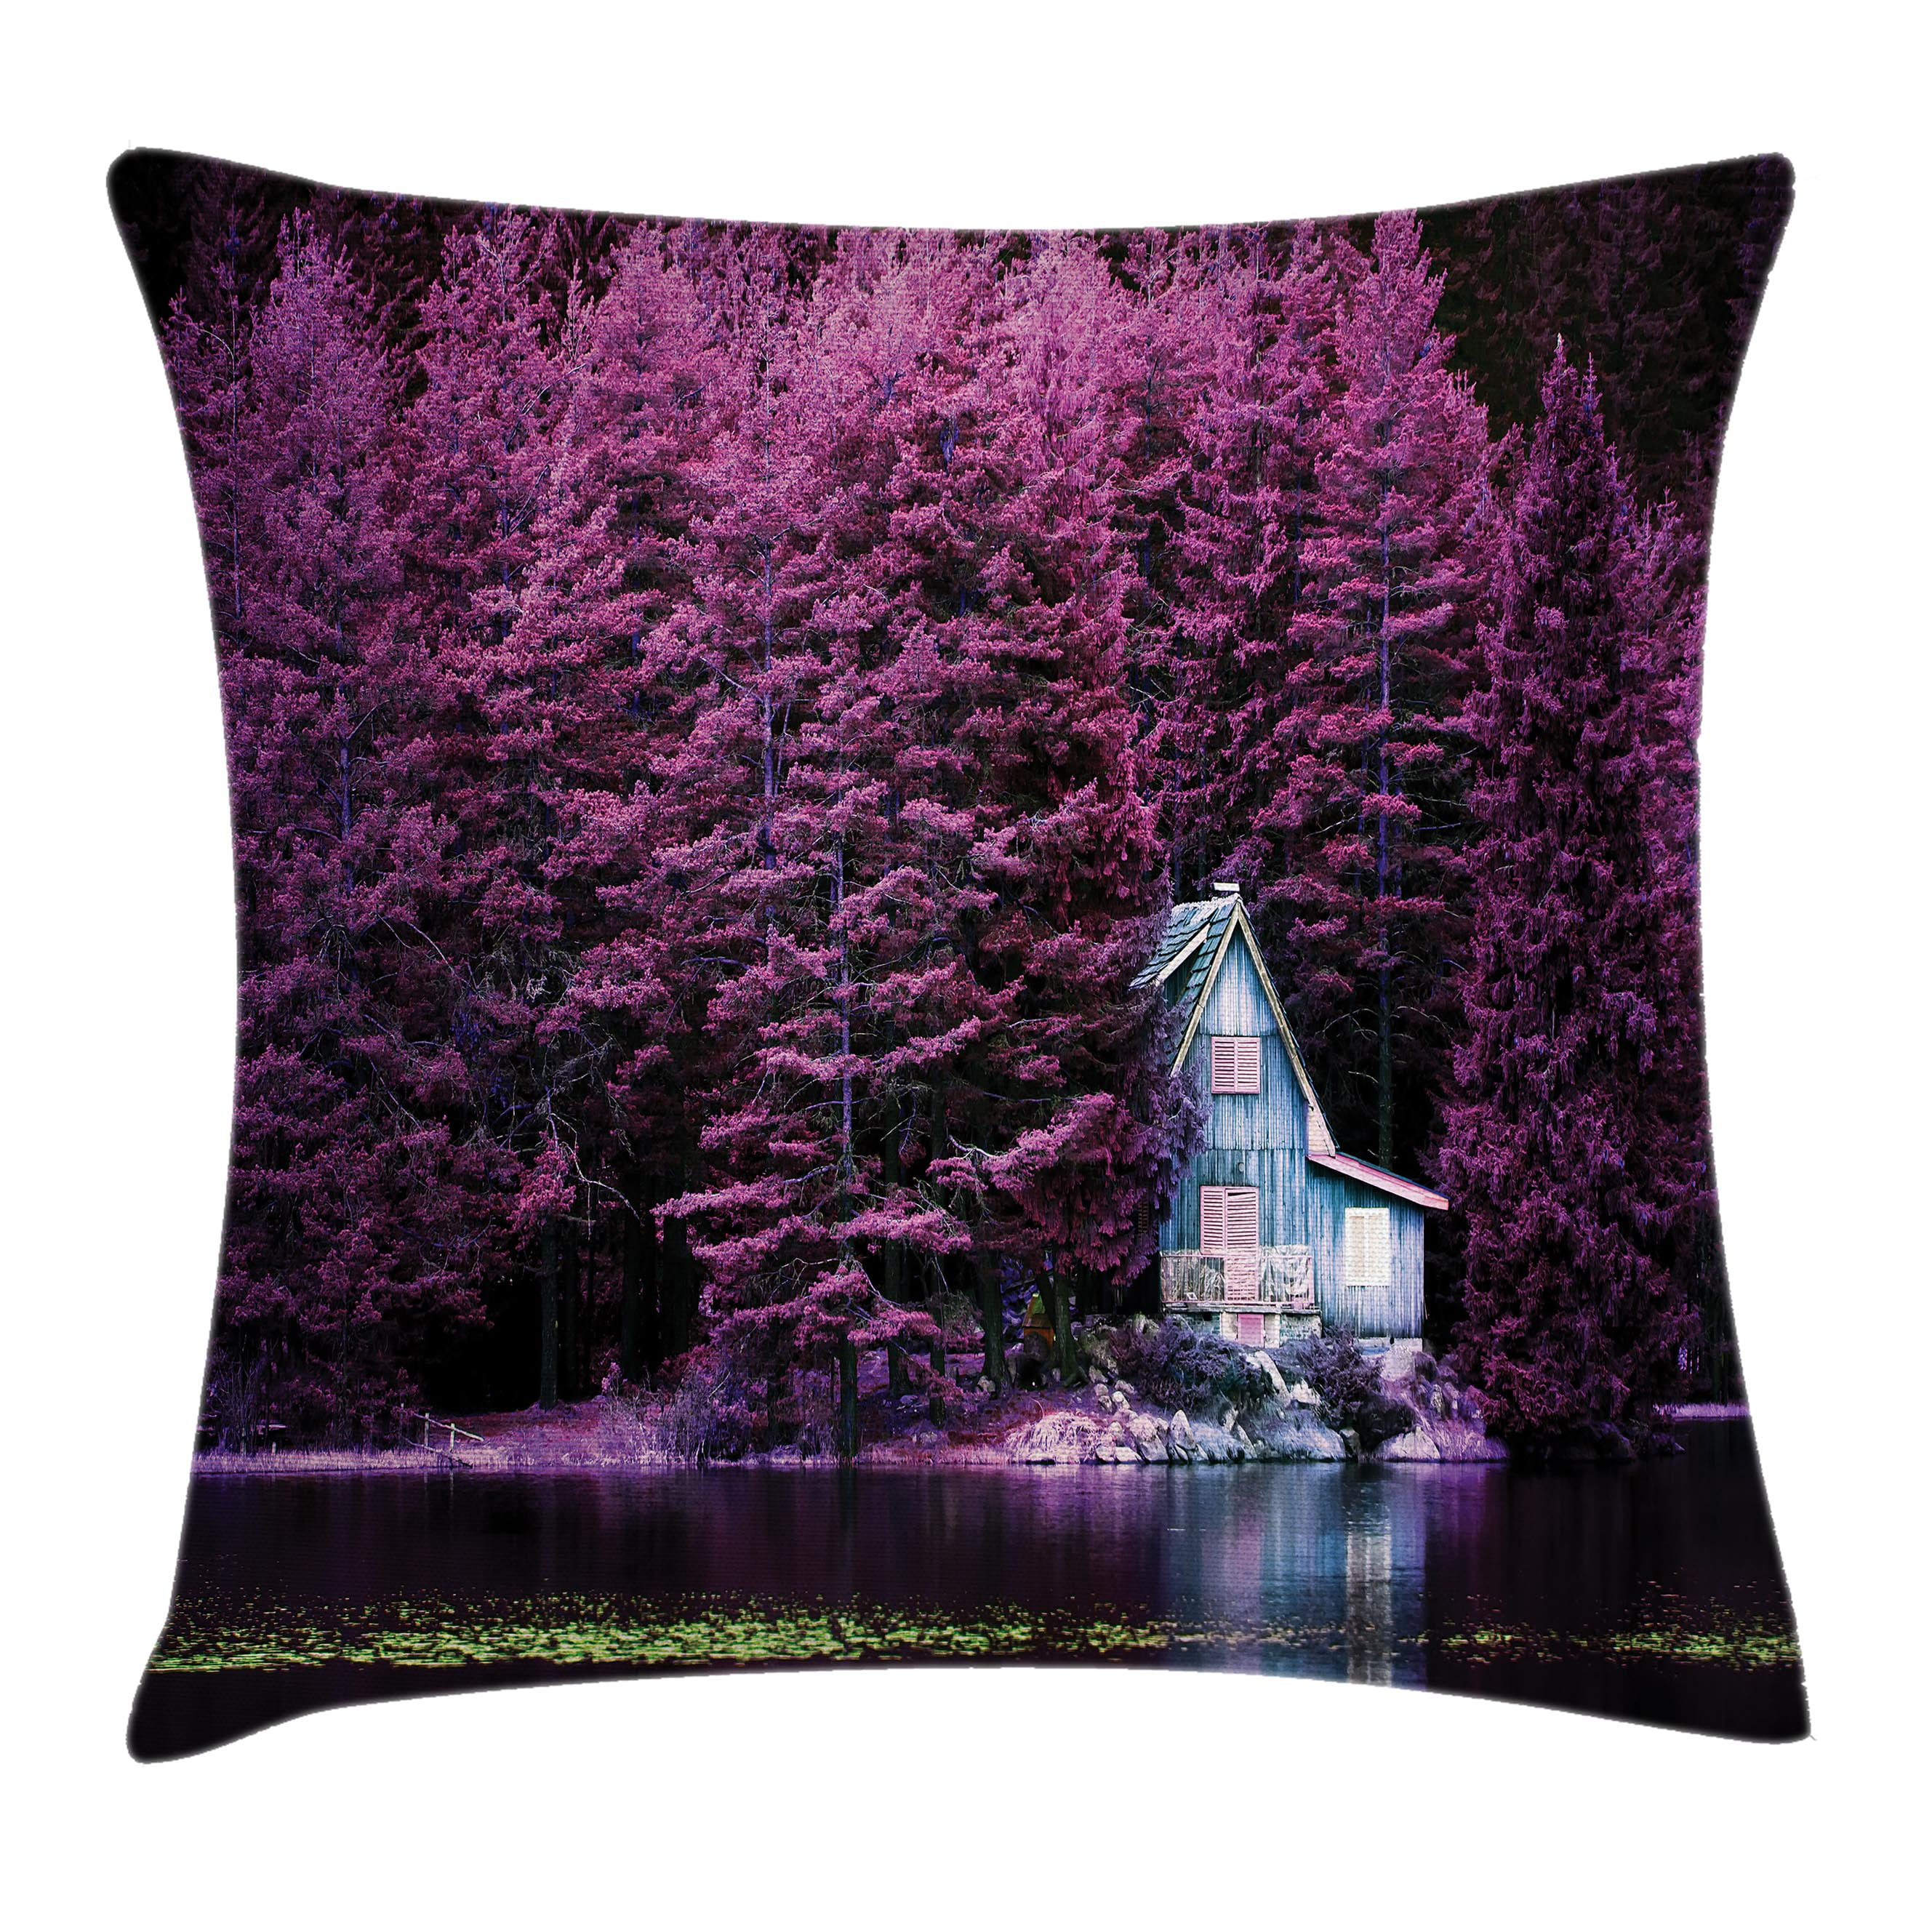 Spring Home Decor 2019: Lavender Throw Pillow Cushion Cover, Purple Trees By A